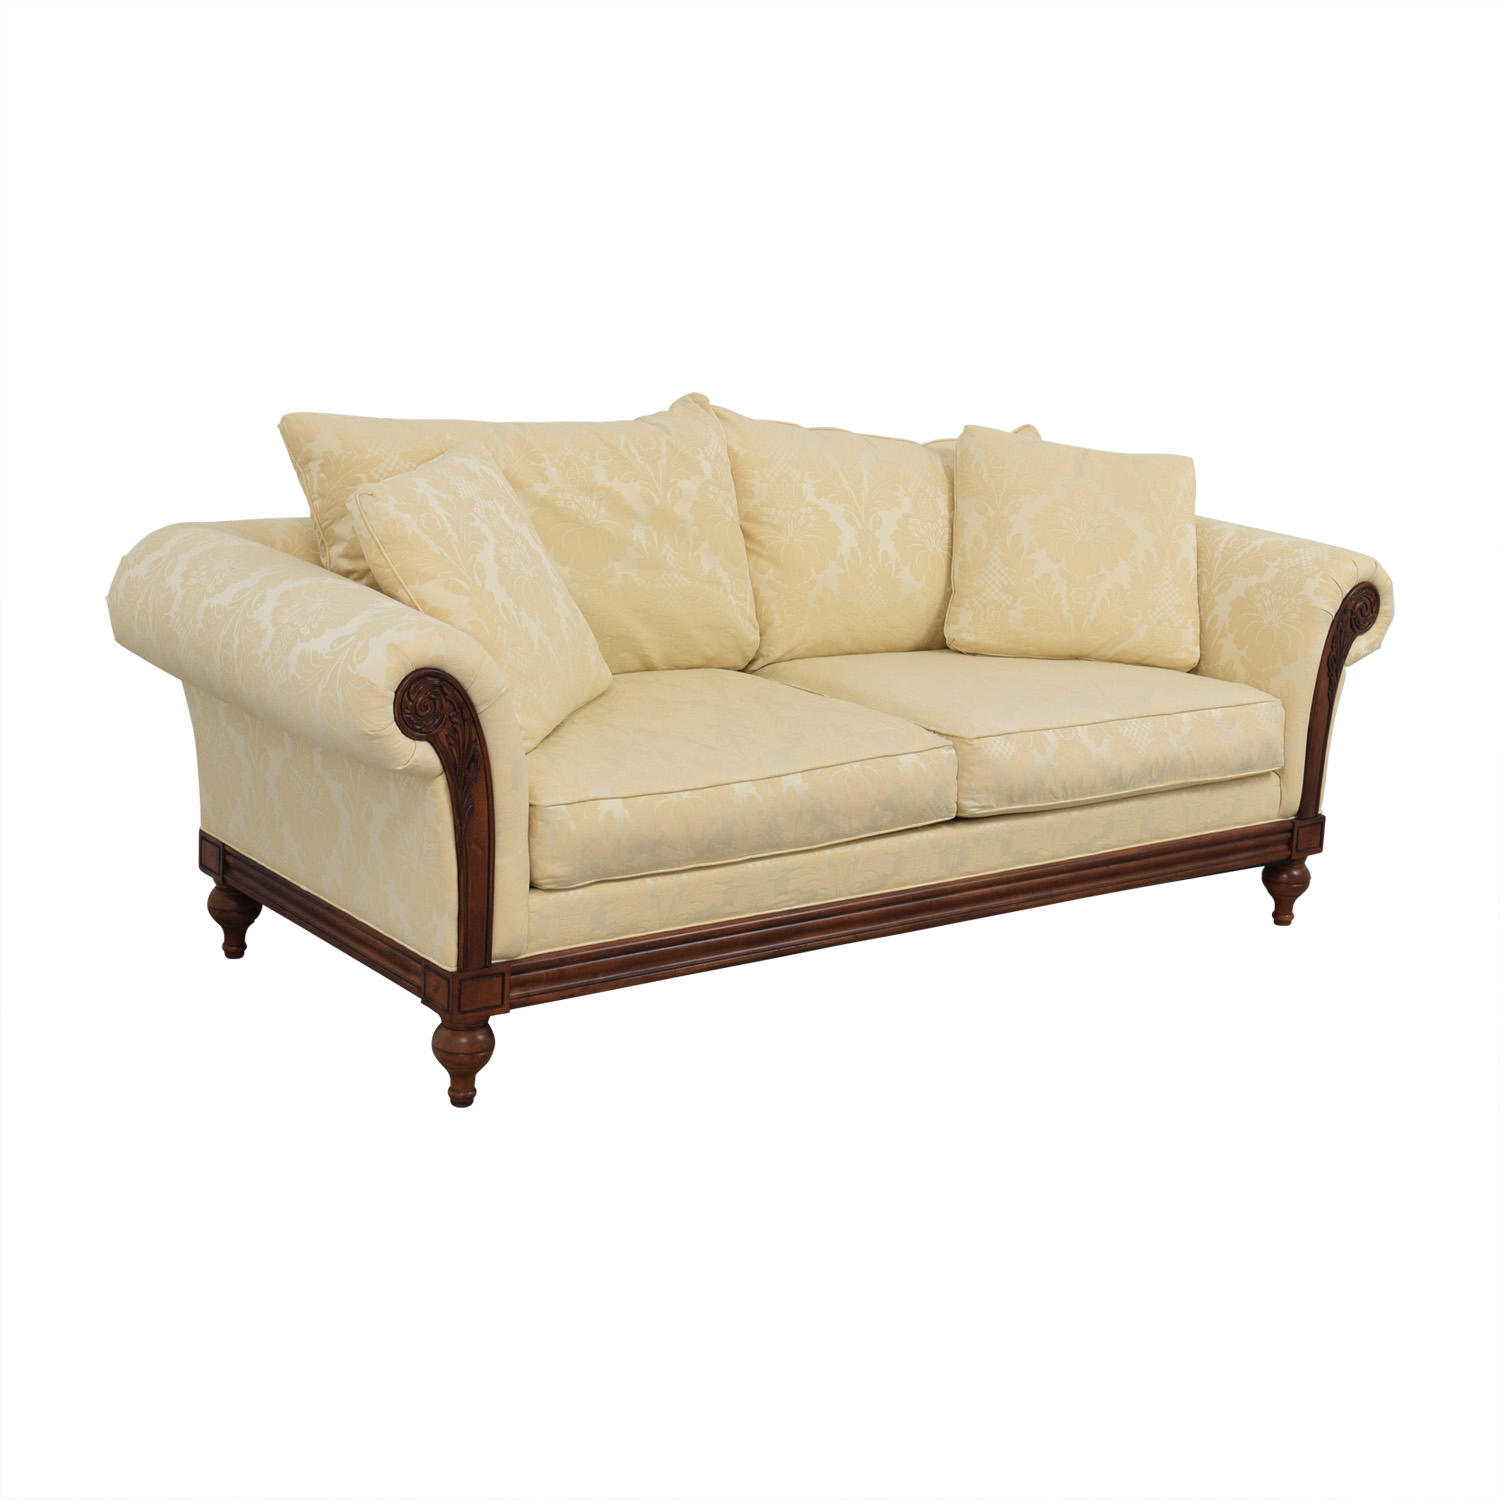 old sofa set in pune walmart gl table olx marvelous interior images of homes second hand wood brokeasshome com